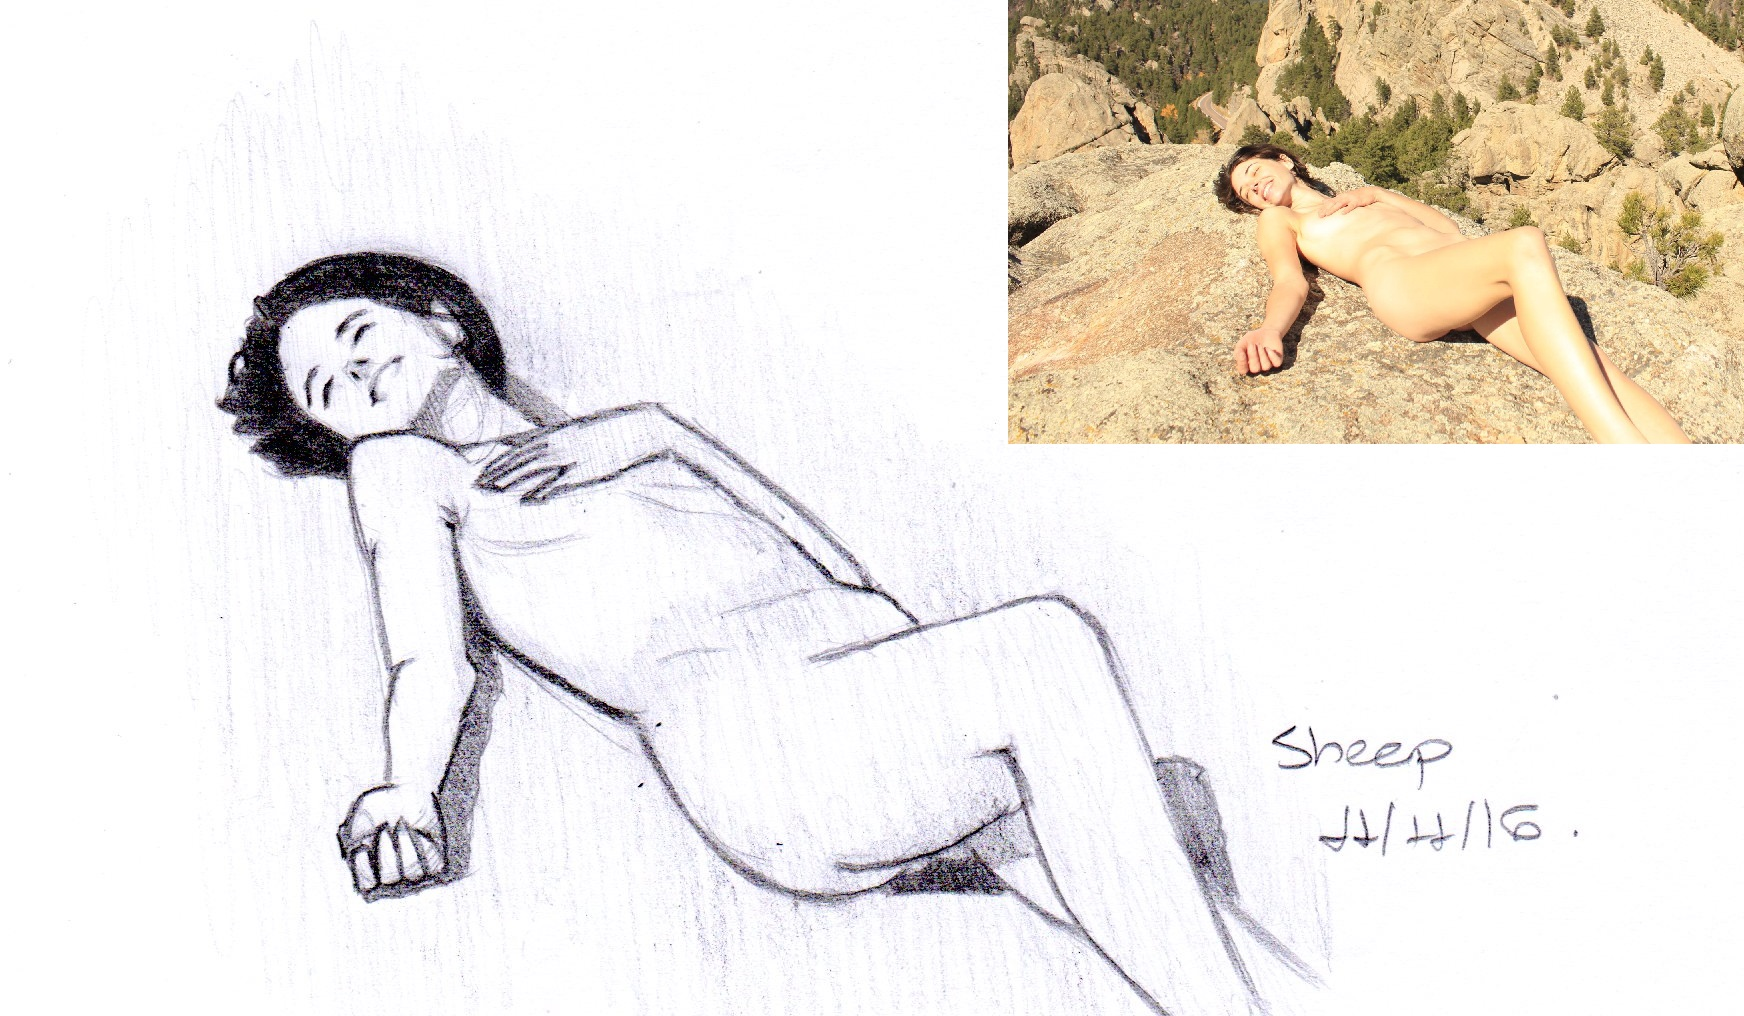 RGD - Lying naked on a mountain top